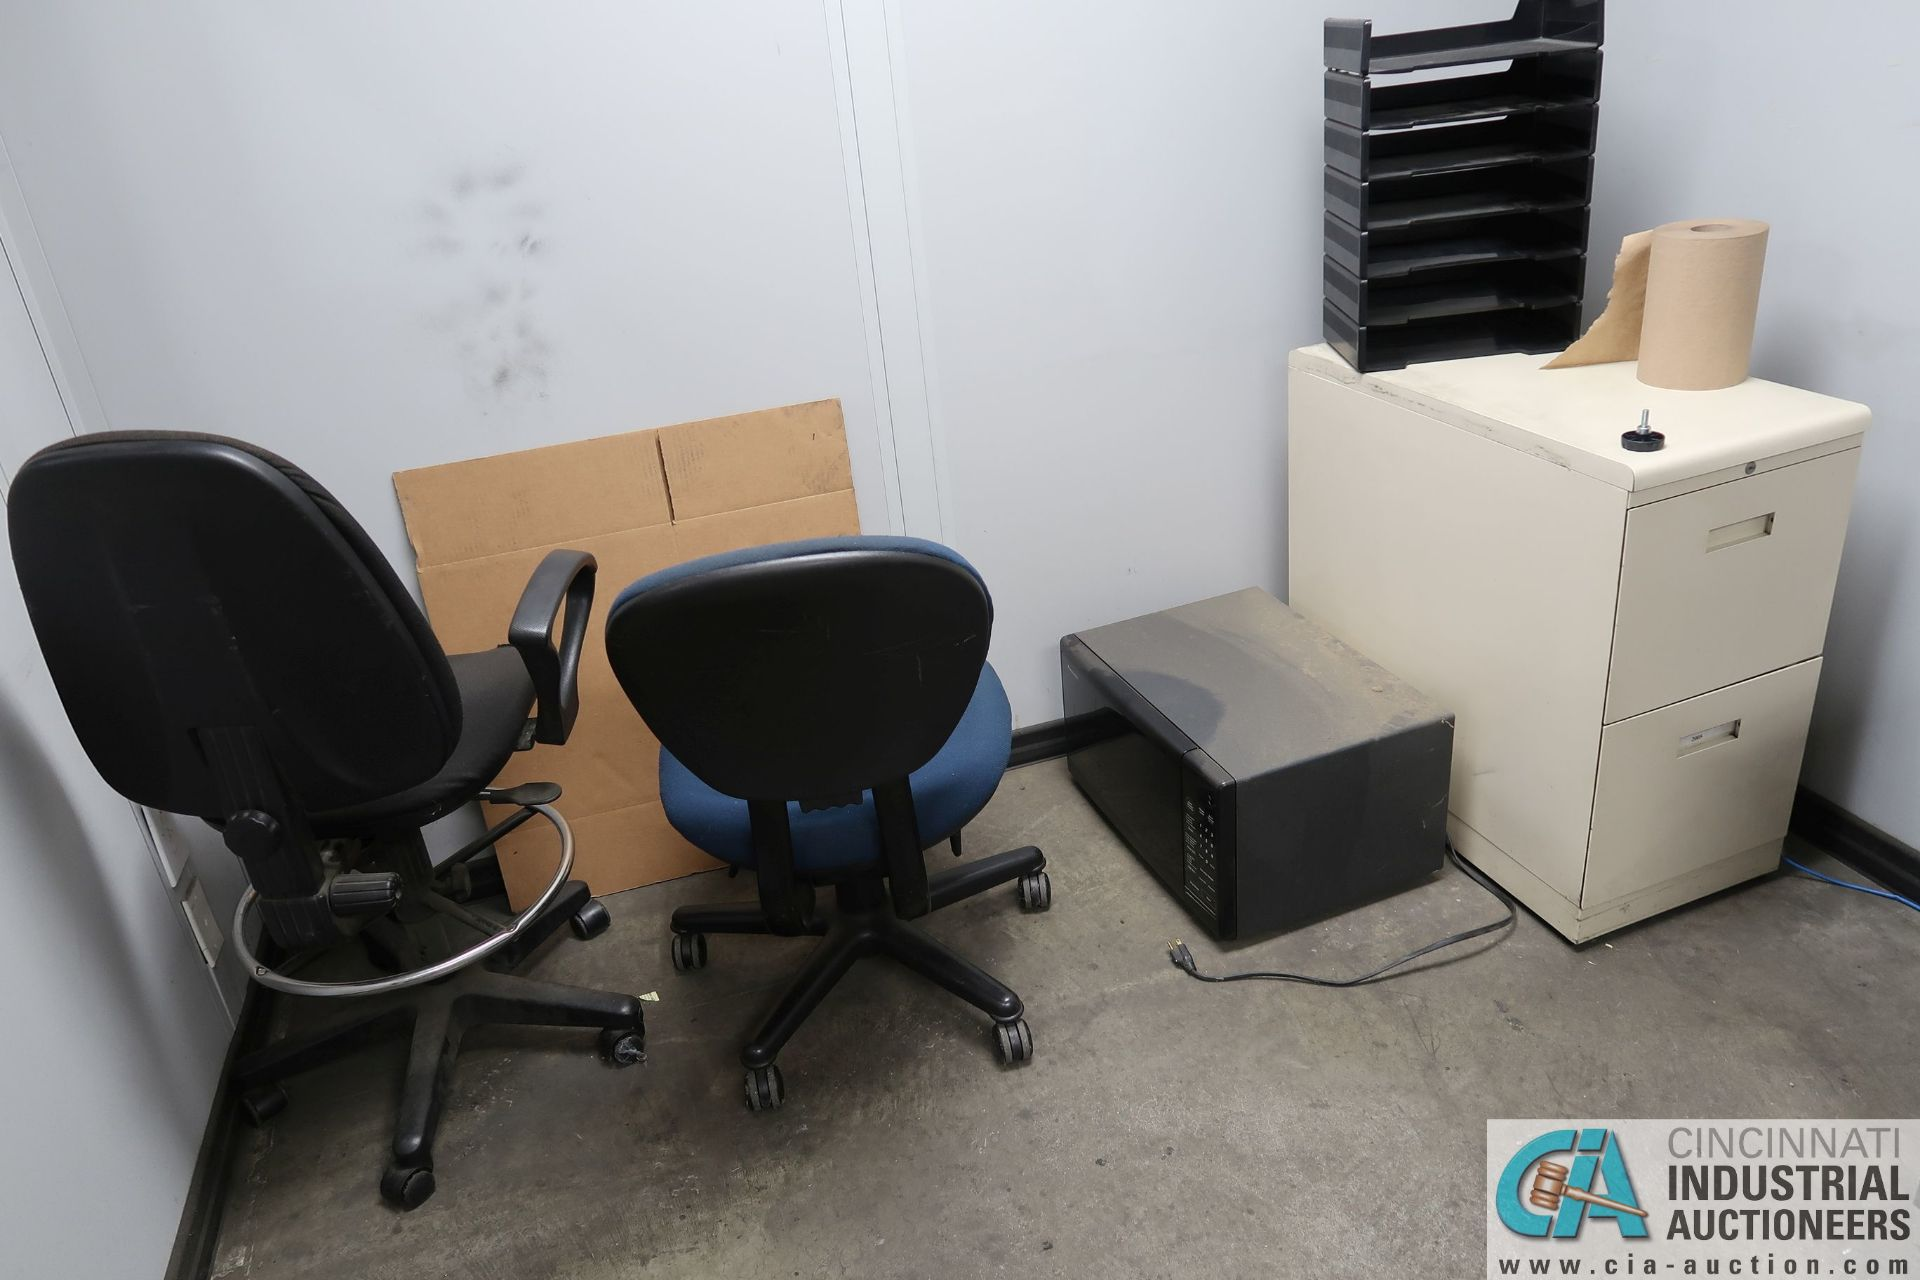 (LOT) FILE CABINETS AND CHAIRS IN SHIPPING RECIEVING OFFICE **NO AC UNIT** - Image 3 of 3